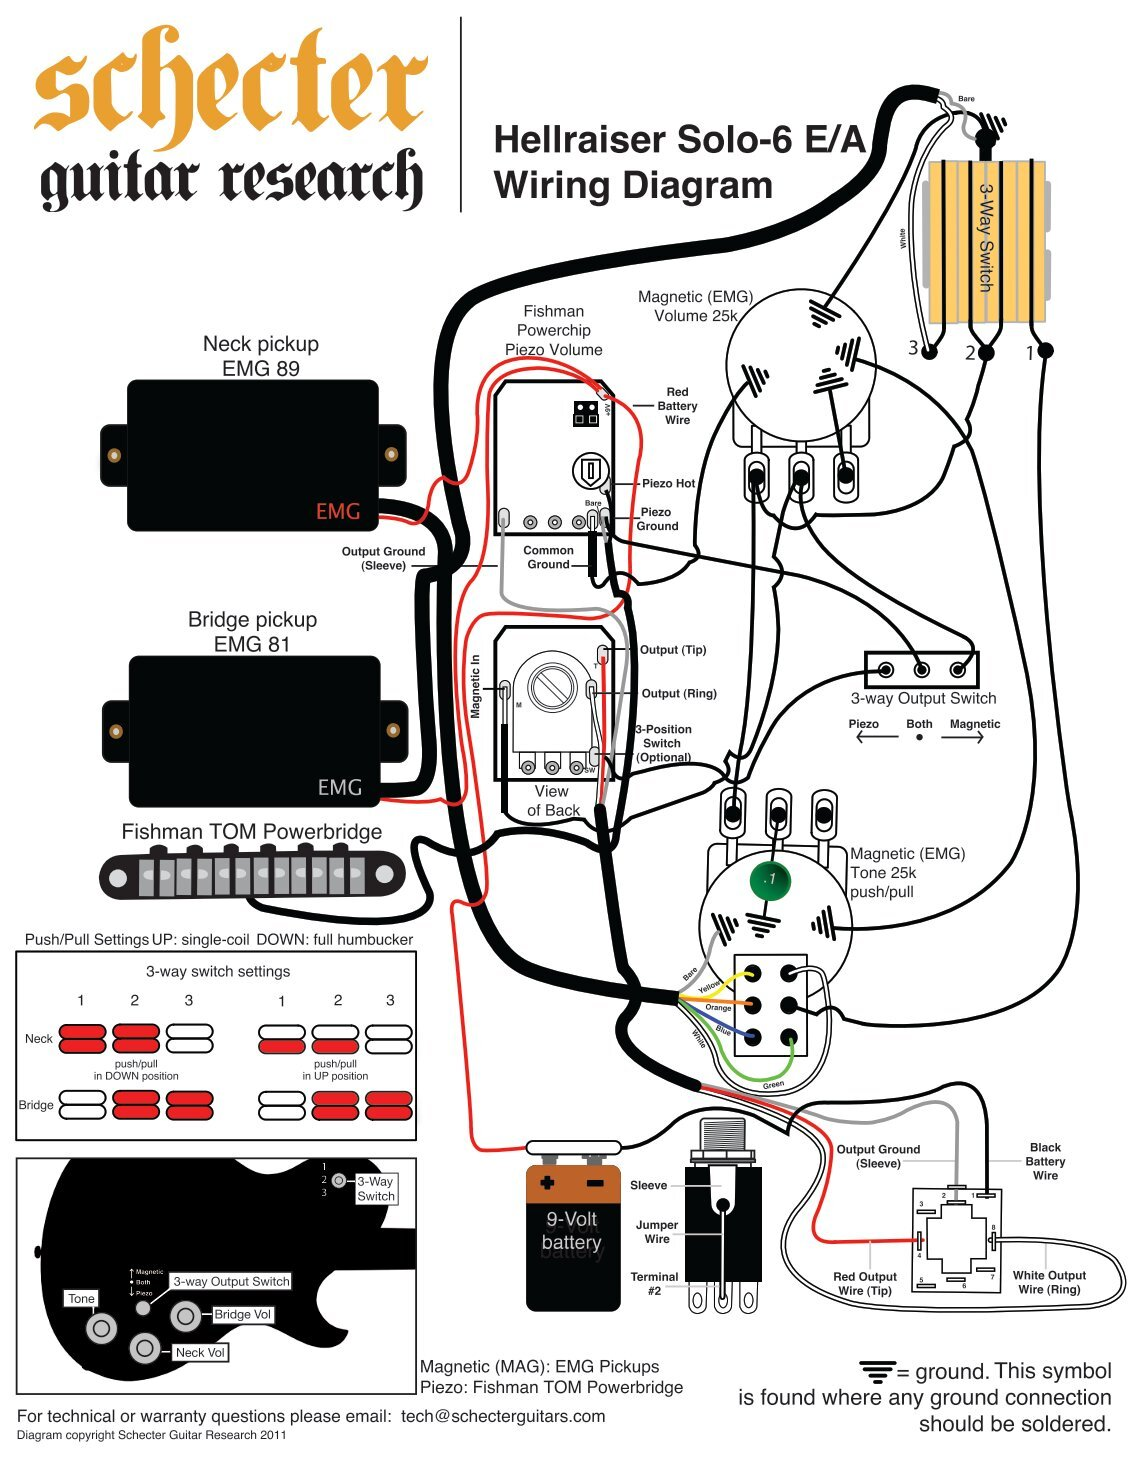 emg guitar wiring diagrams emg 89 wiring diagram wiring emg 1 pickup 1  volume diagram emg 81 wiring diagram 1 volume